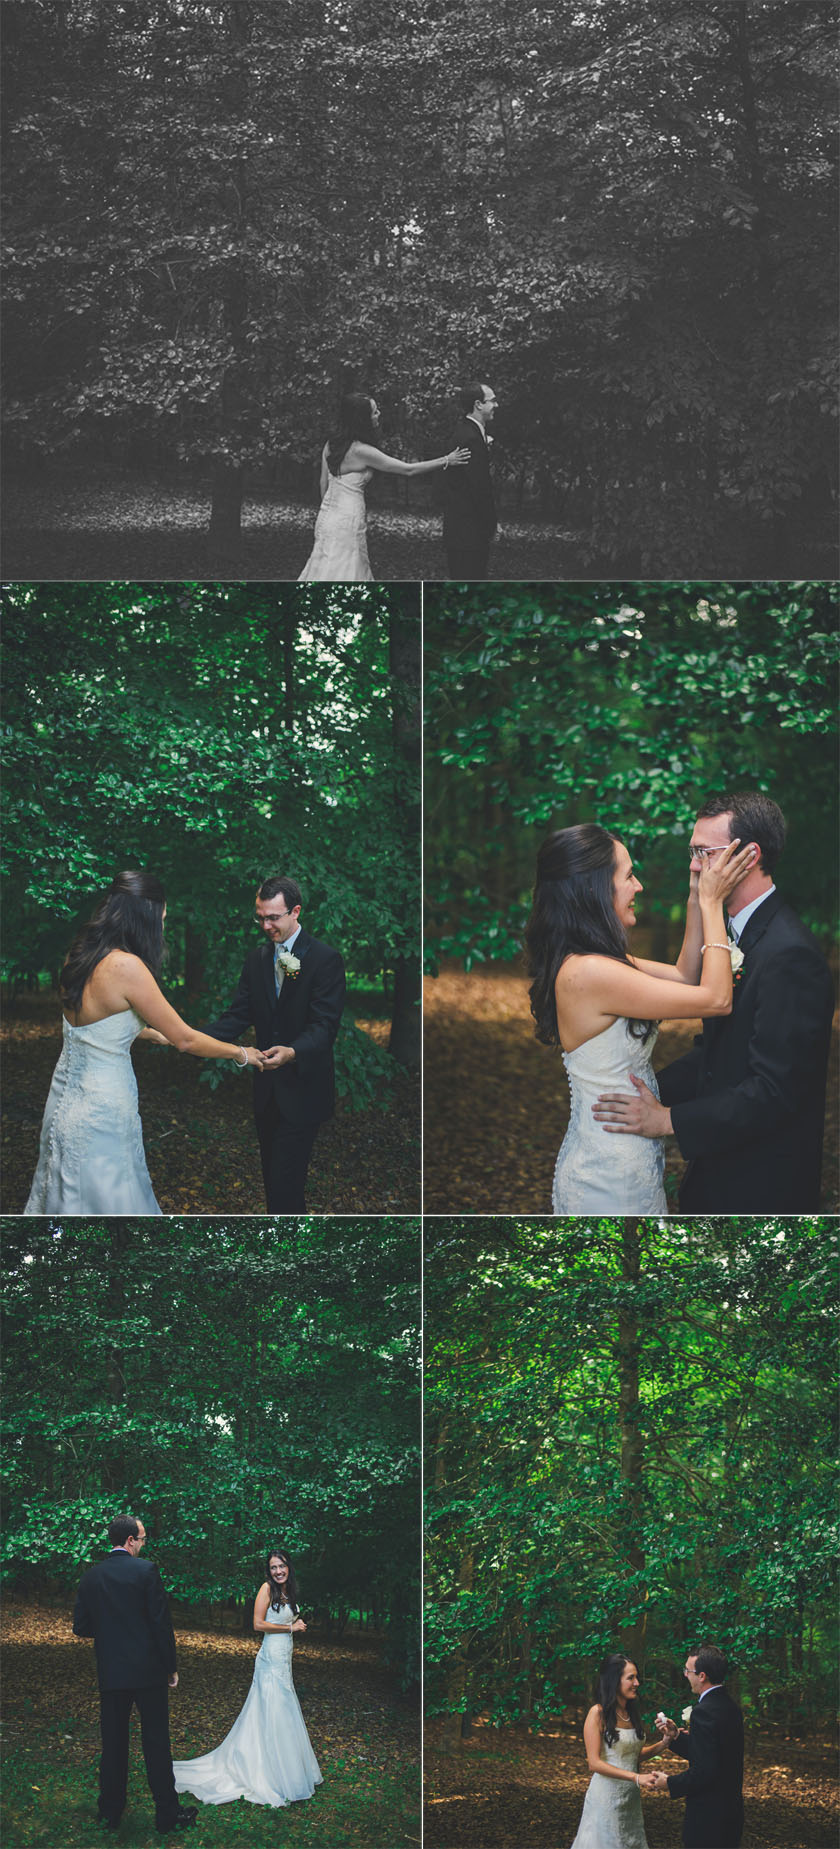 Connectiopn_Photography_Raleigh_NC_Wedding_Photographer_18